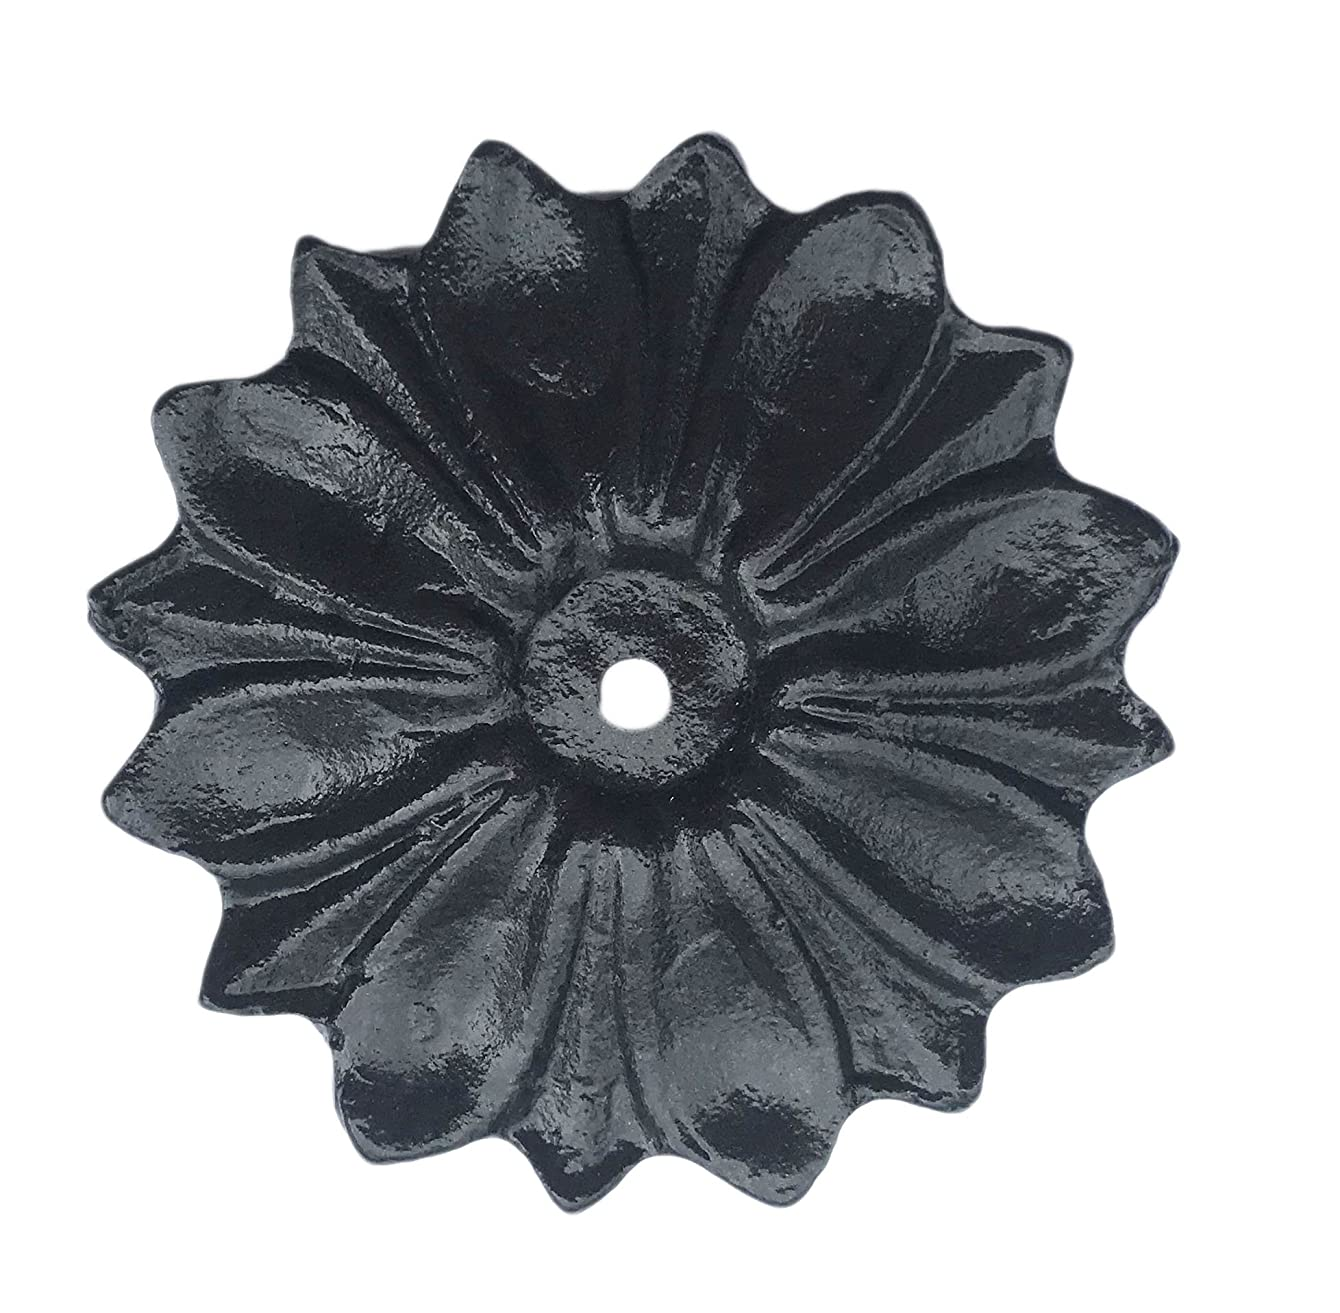 Antique Knob Back Plate (5 COLORS) Solid Metal Flower Shaped Decorative for Knobs, Pull (Black)